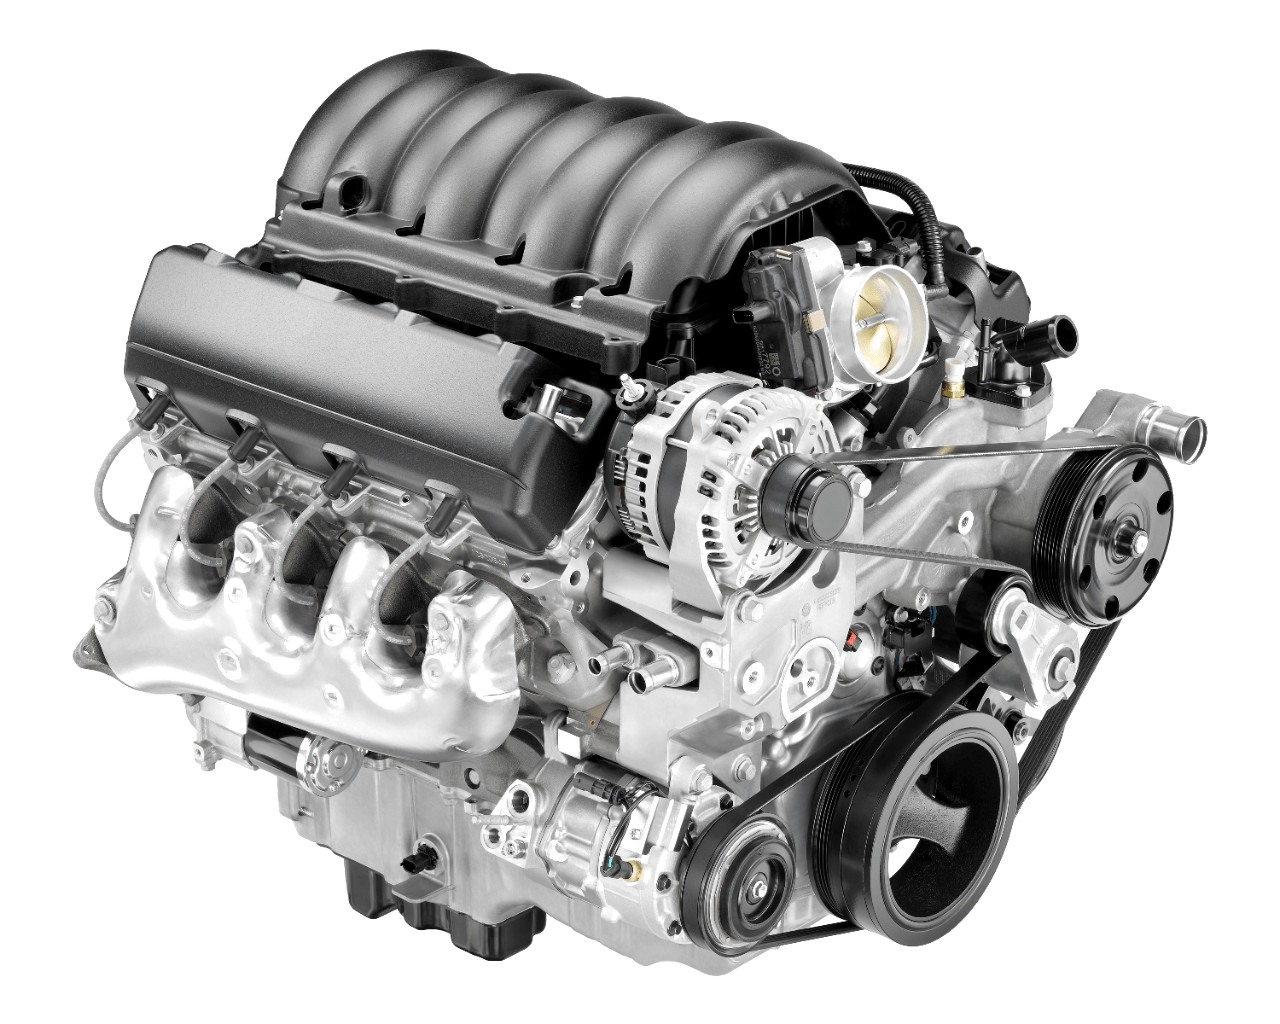 Gm 5 3l V8 Ecotec3 L83 Engine 3